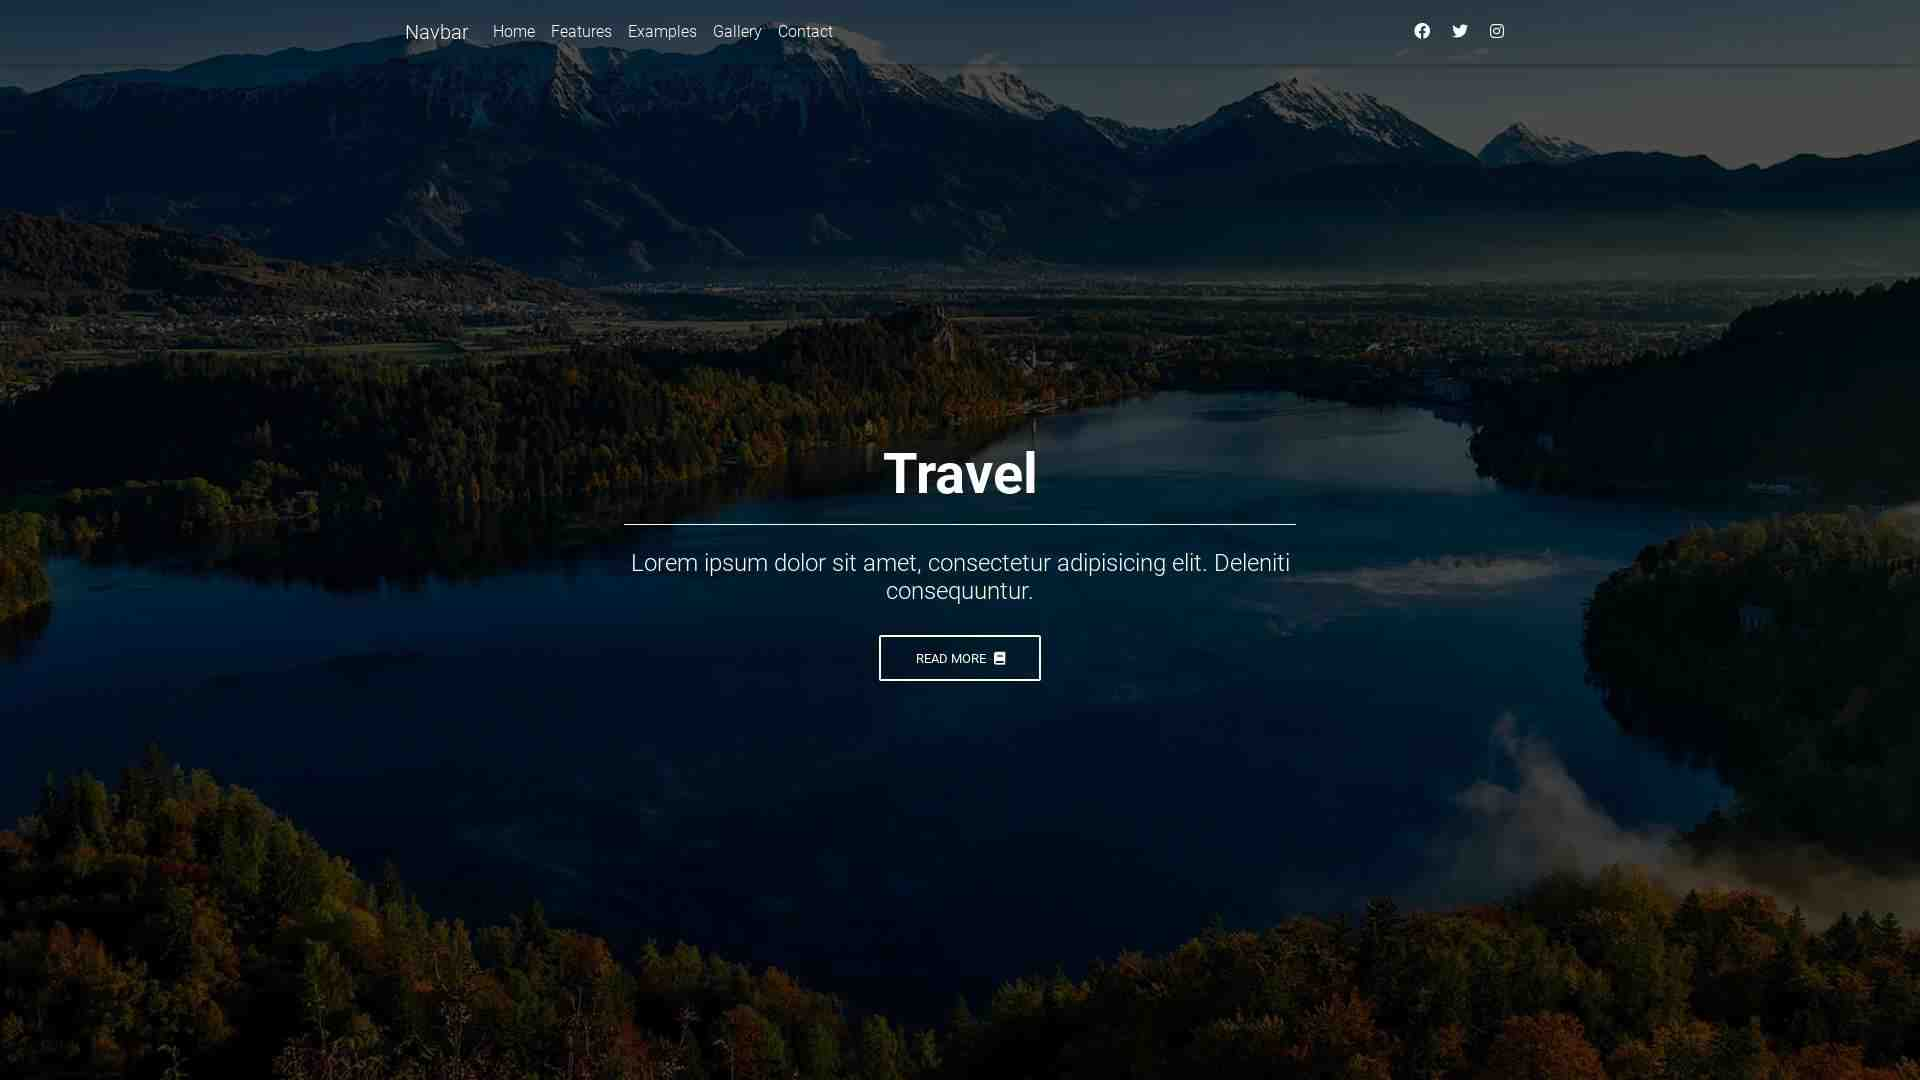 Forked from - Bootstrap Tutorial: Landing page – lesson 10